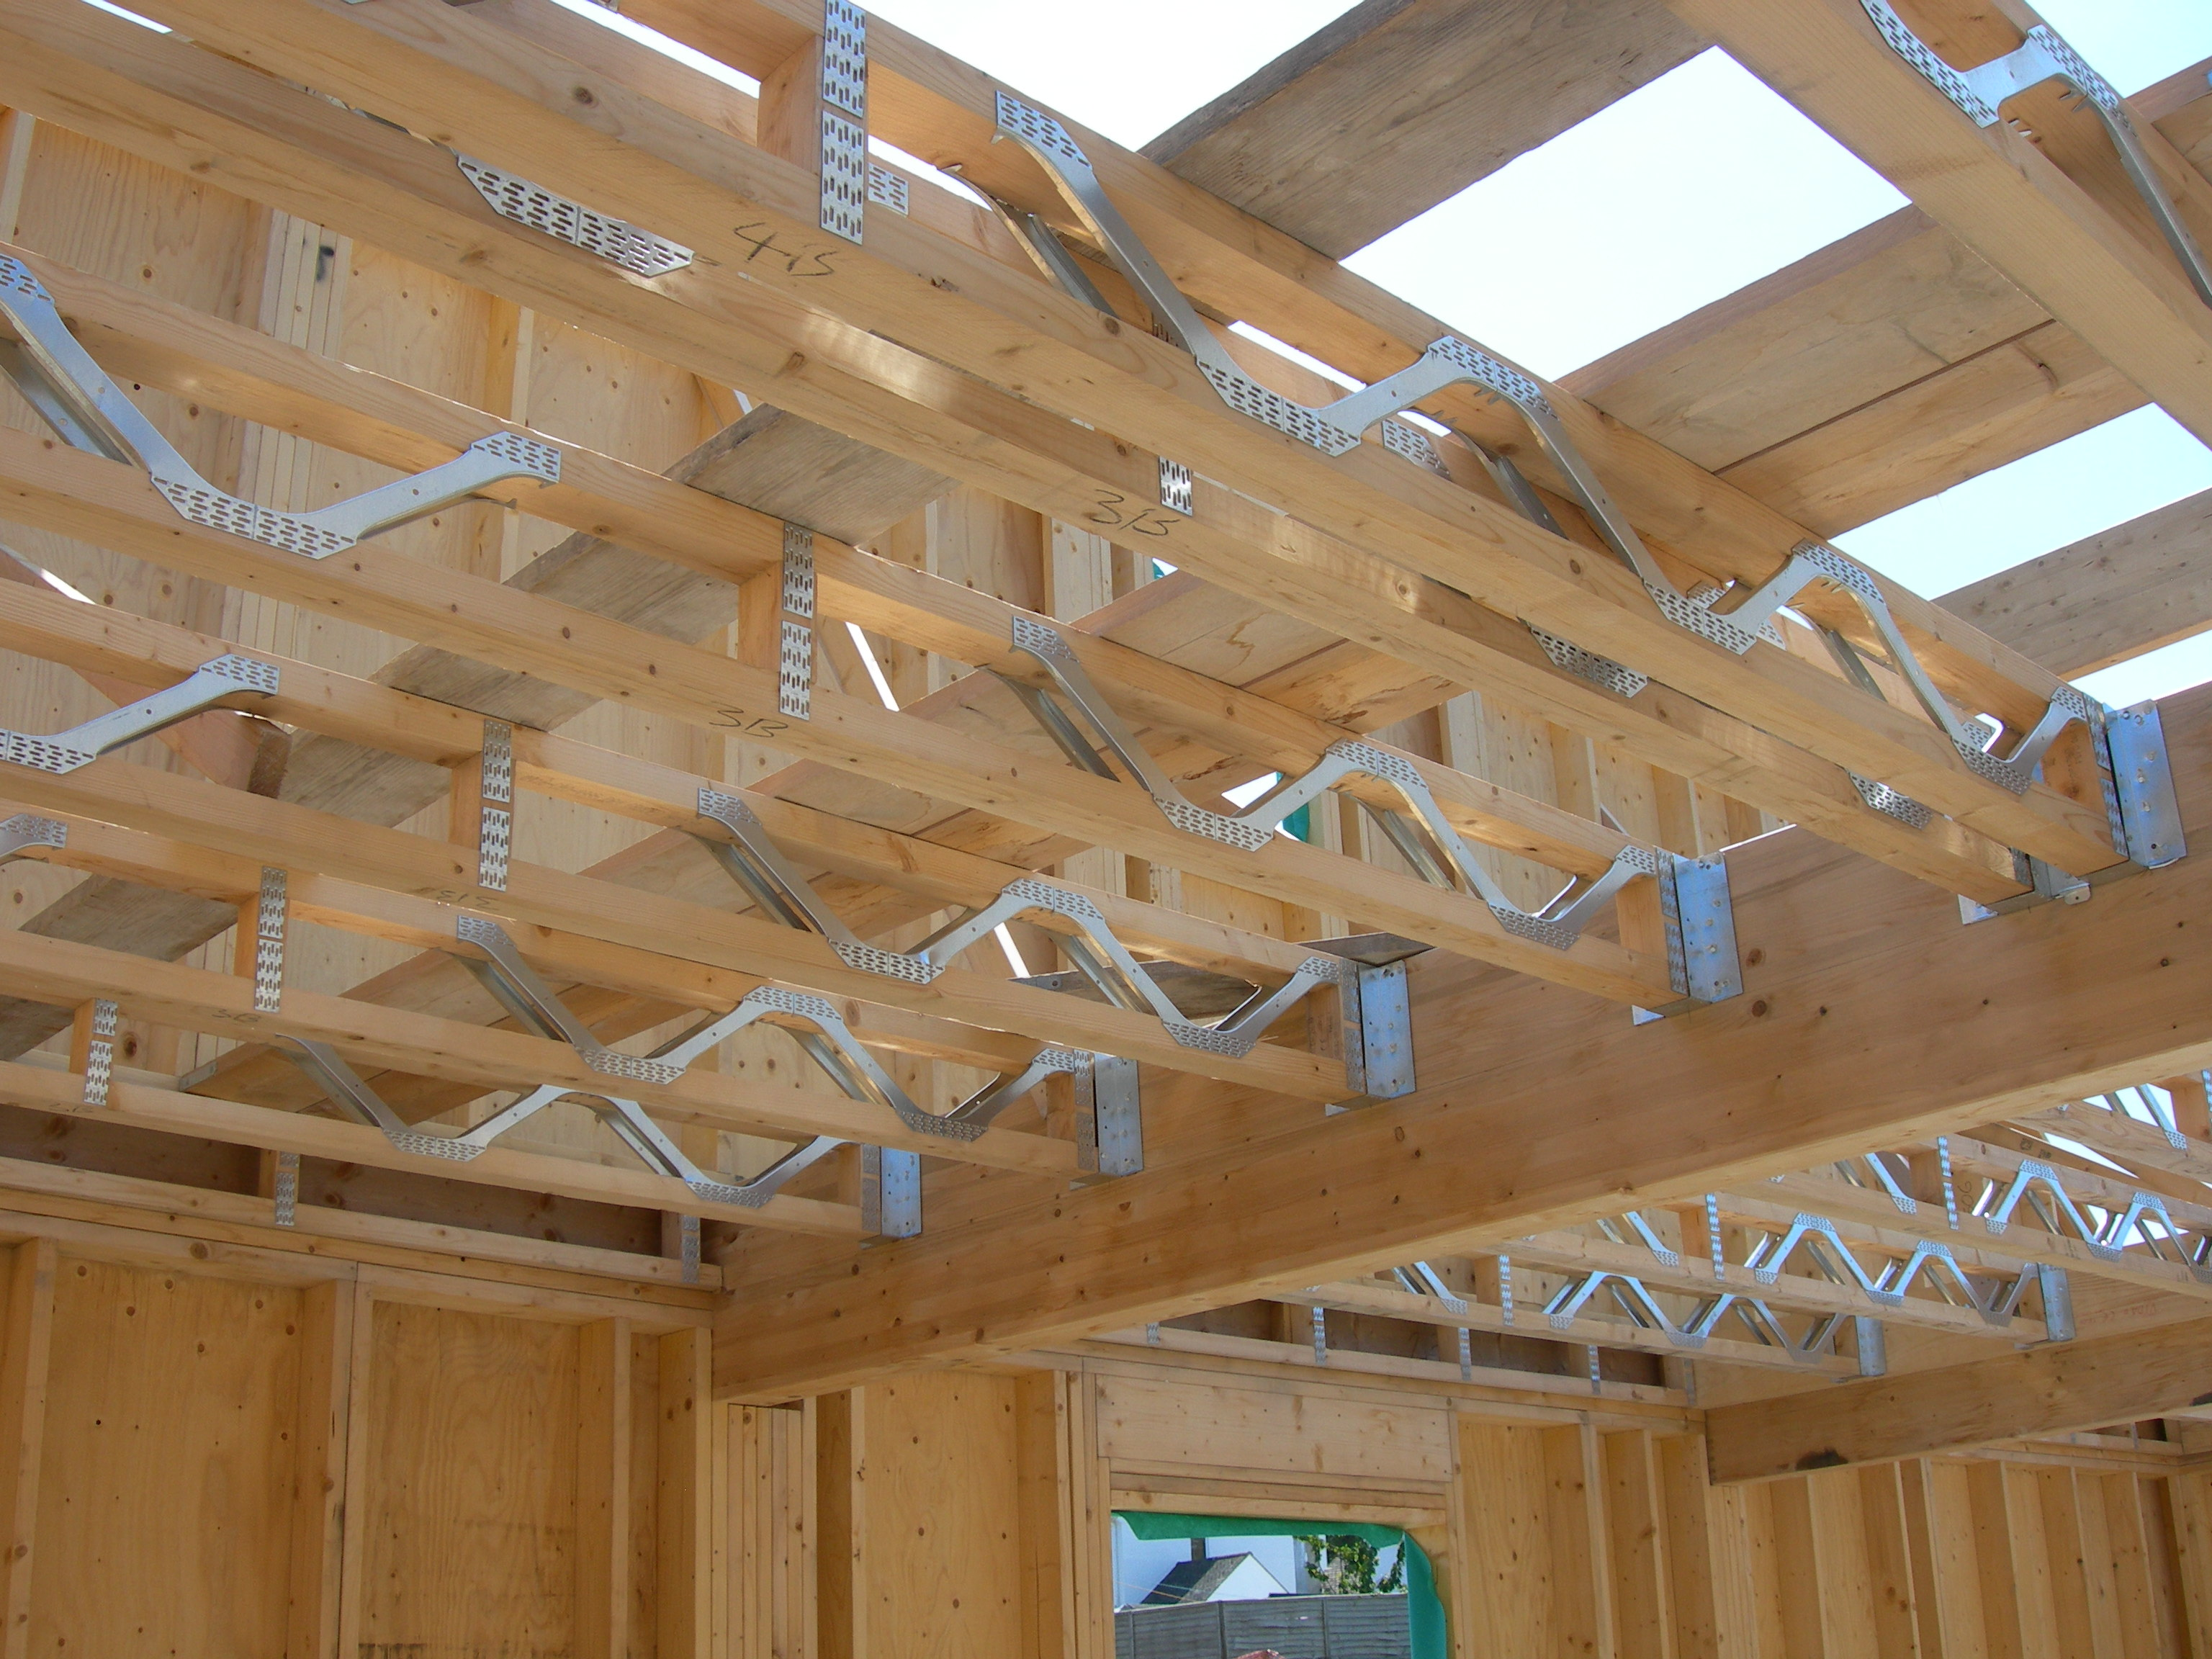 Metal Web Joists | Perkins and Perry